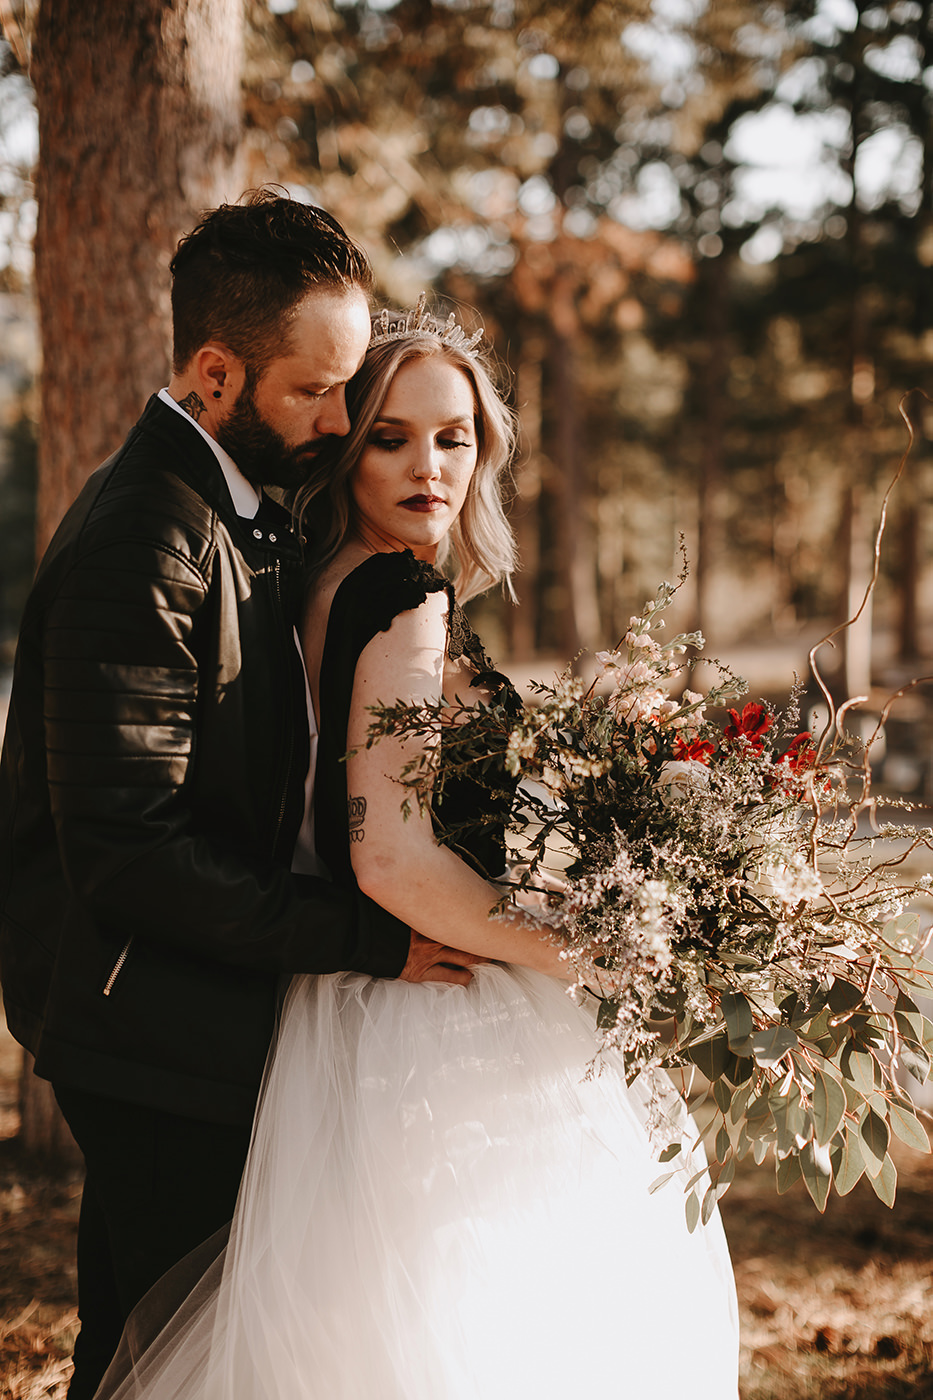 Liz Osban Photography Wedding Elopement Eloped engaged engagement couples session photographer deadwood south dakota wyoming beautiful vintage moody colorado mountains vintage best vintage lease martin mason hotel 77.jpg